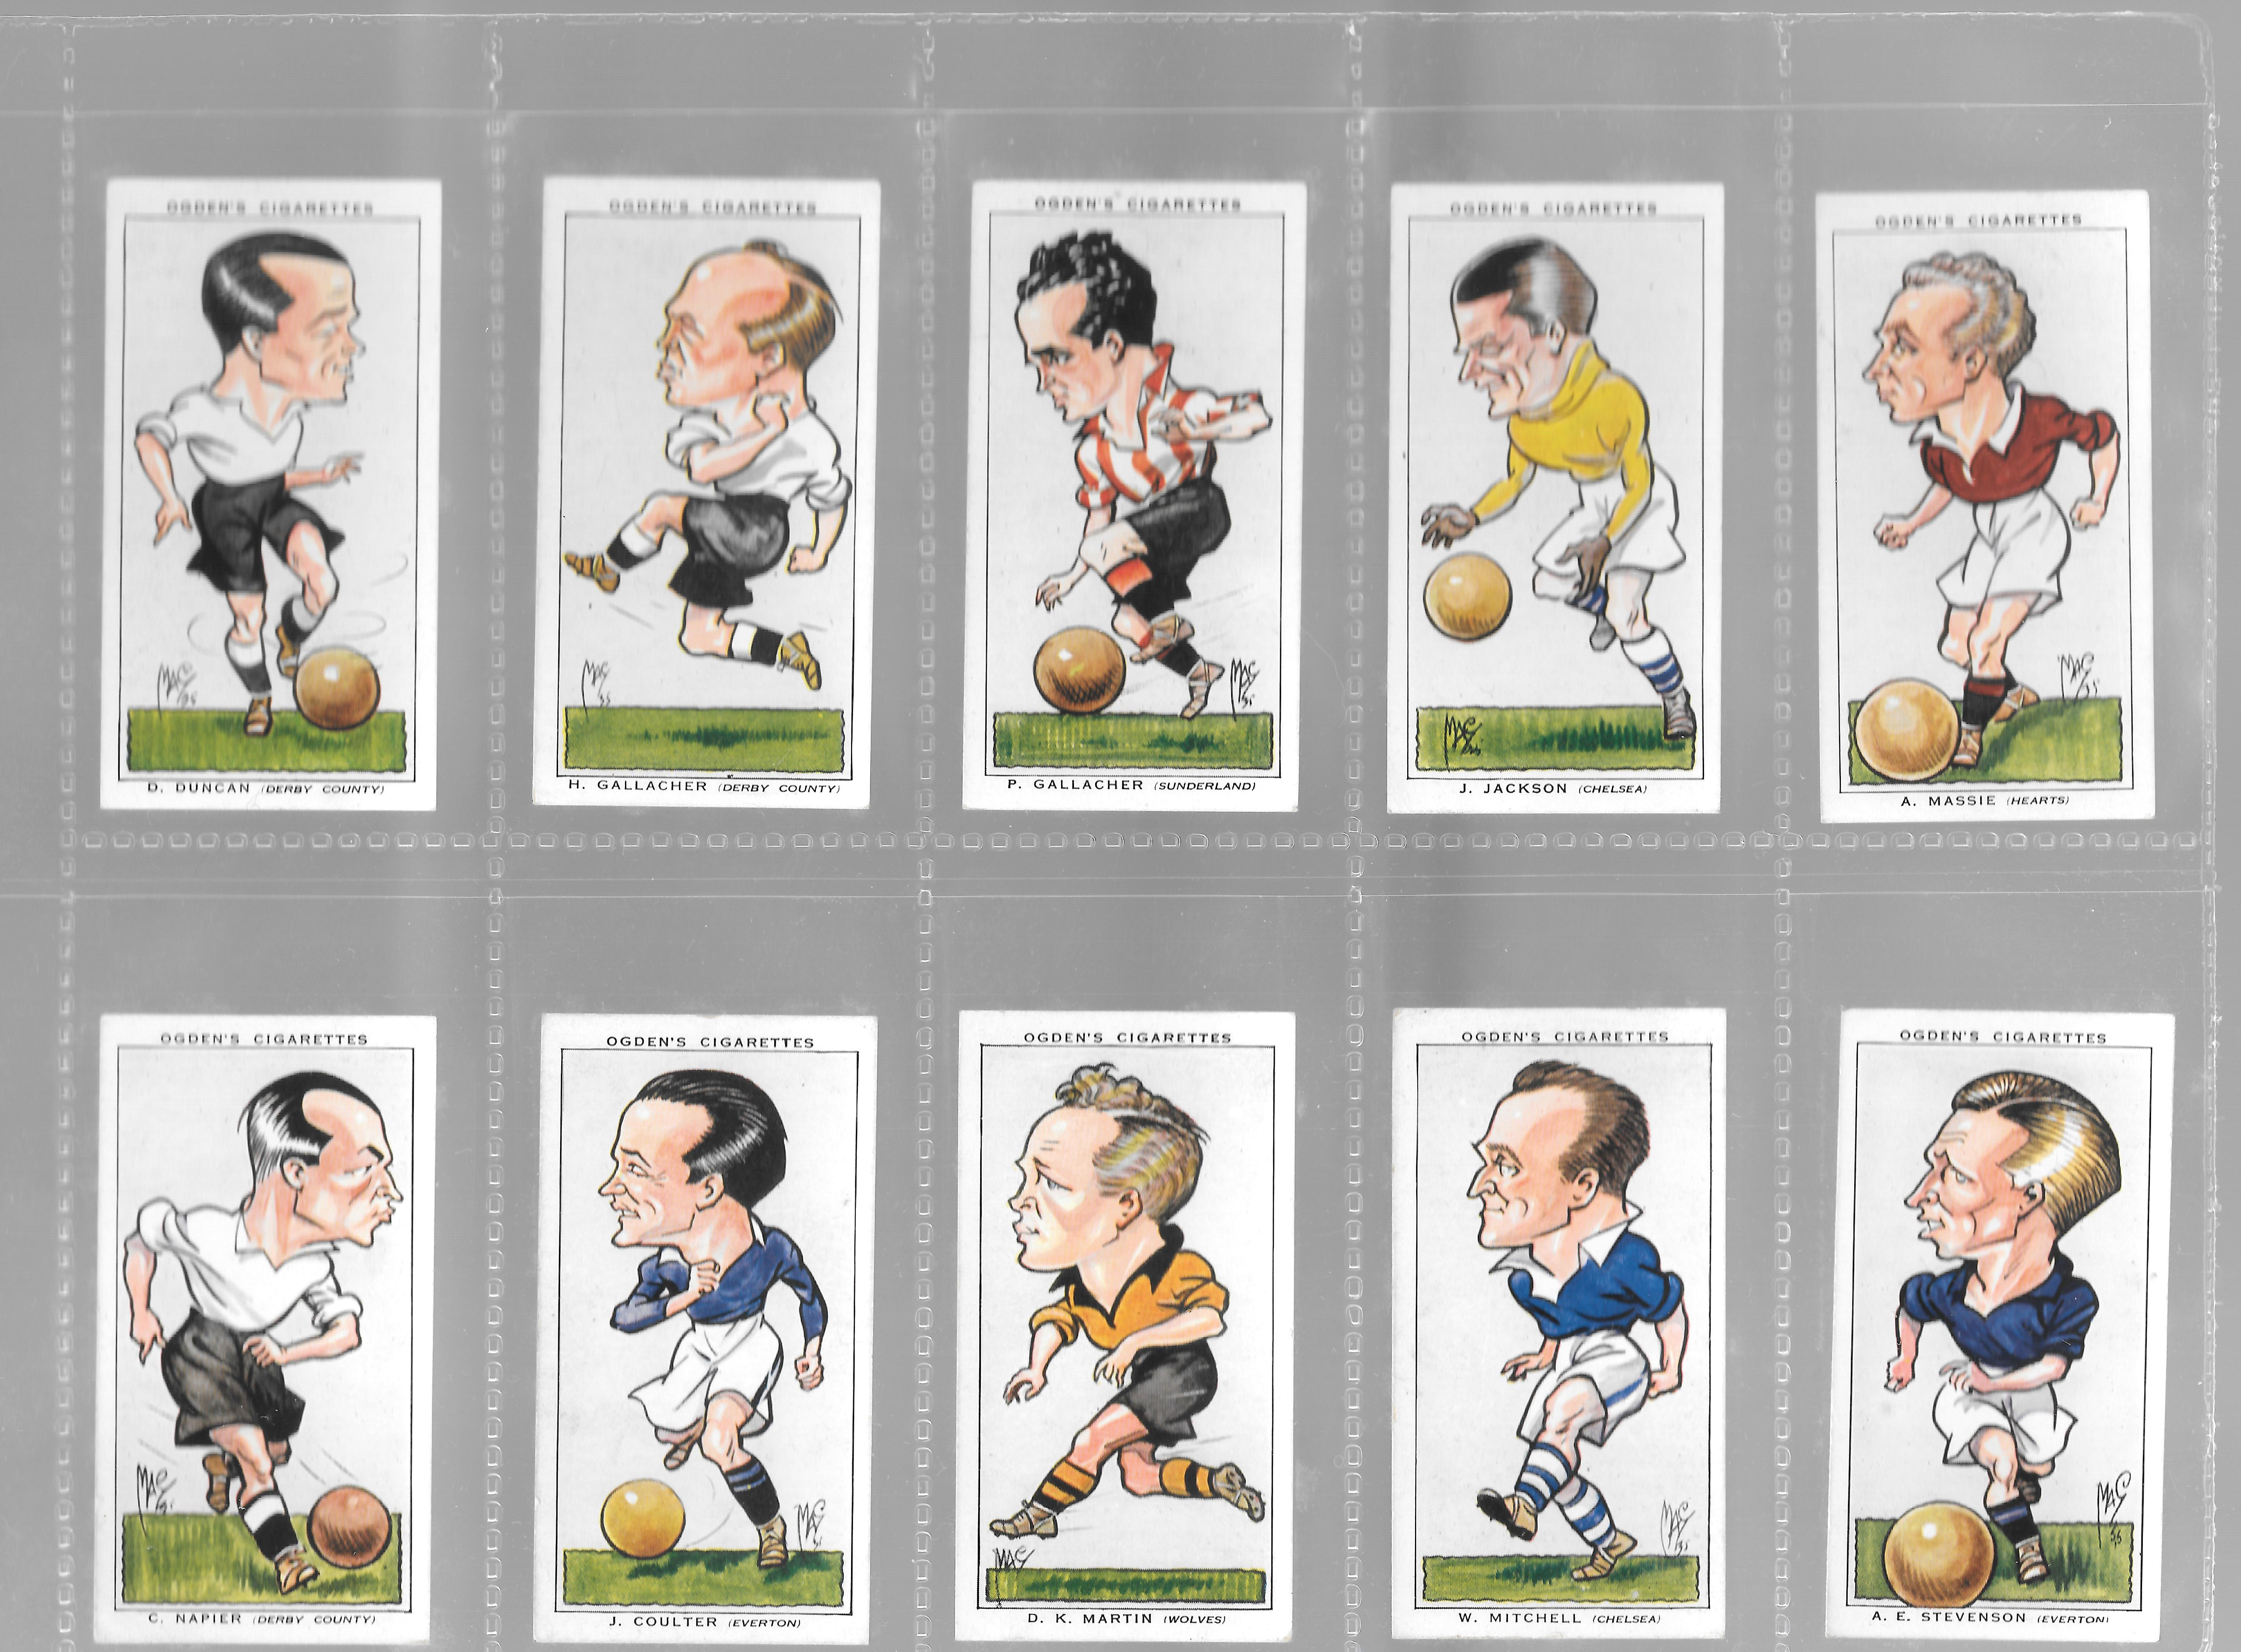 OGDENS-FOOTBALL CARICATURES-#25 HEARTS MASSIE